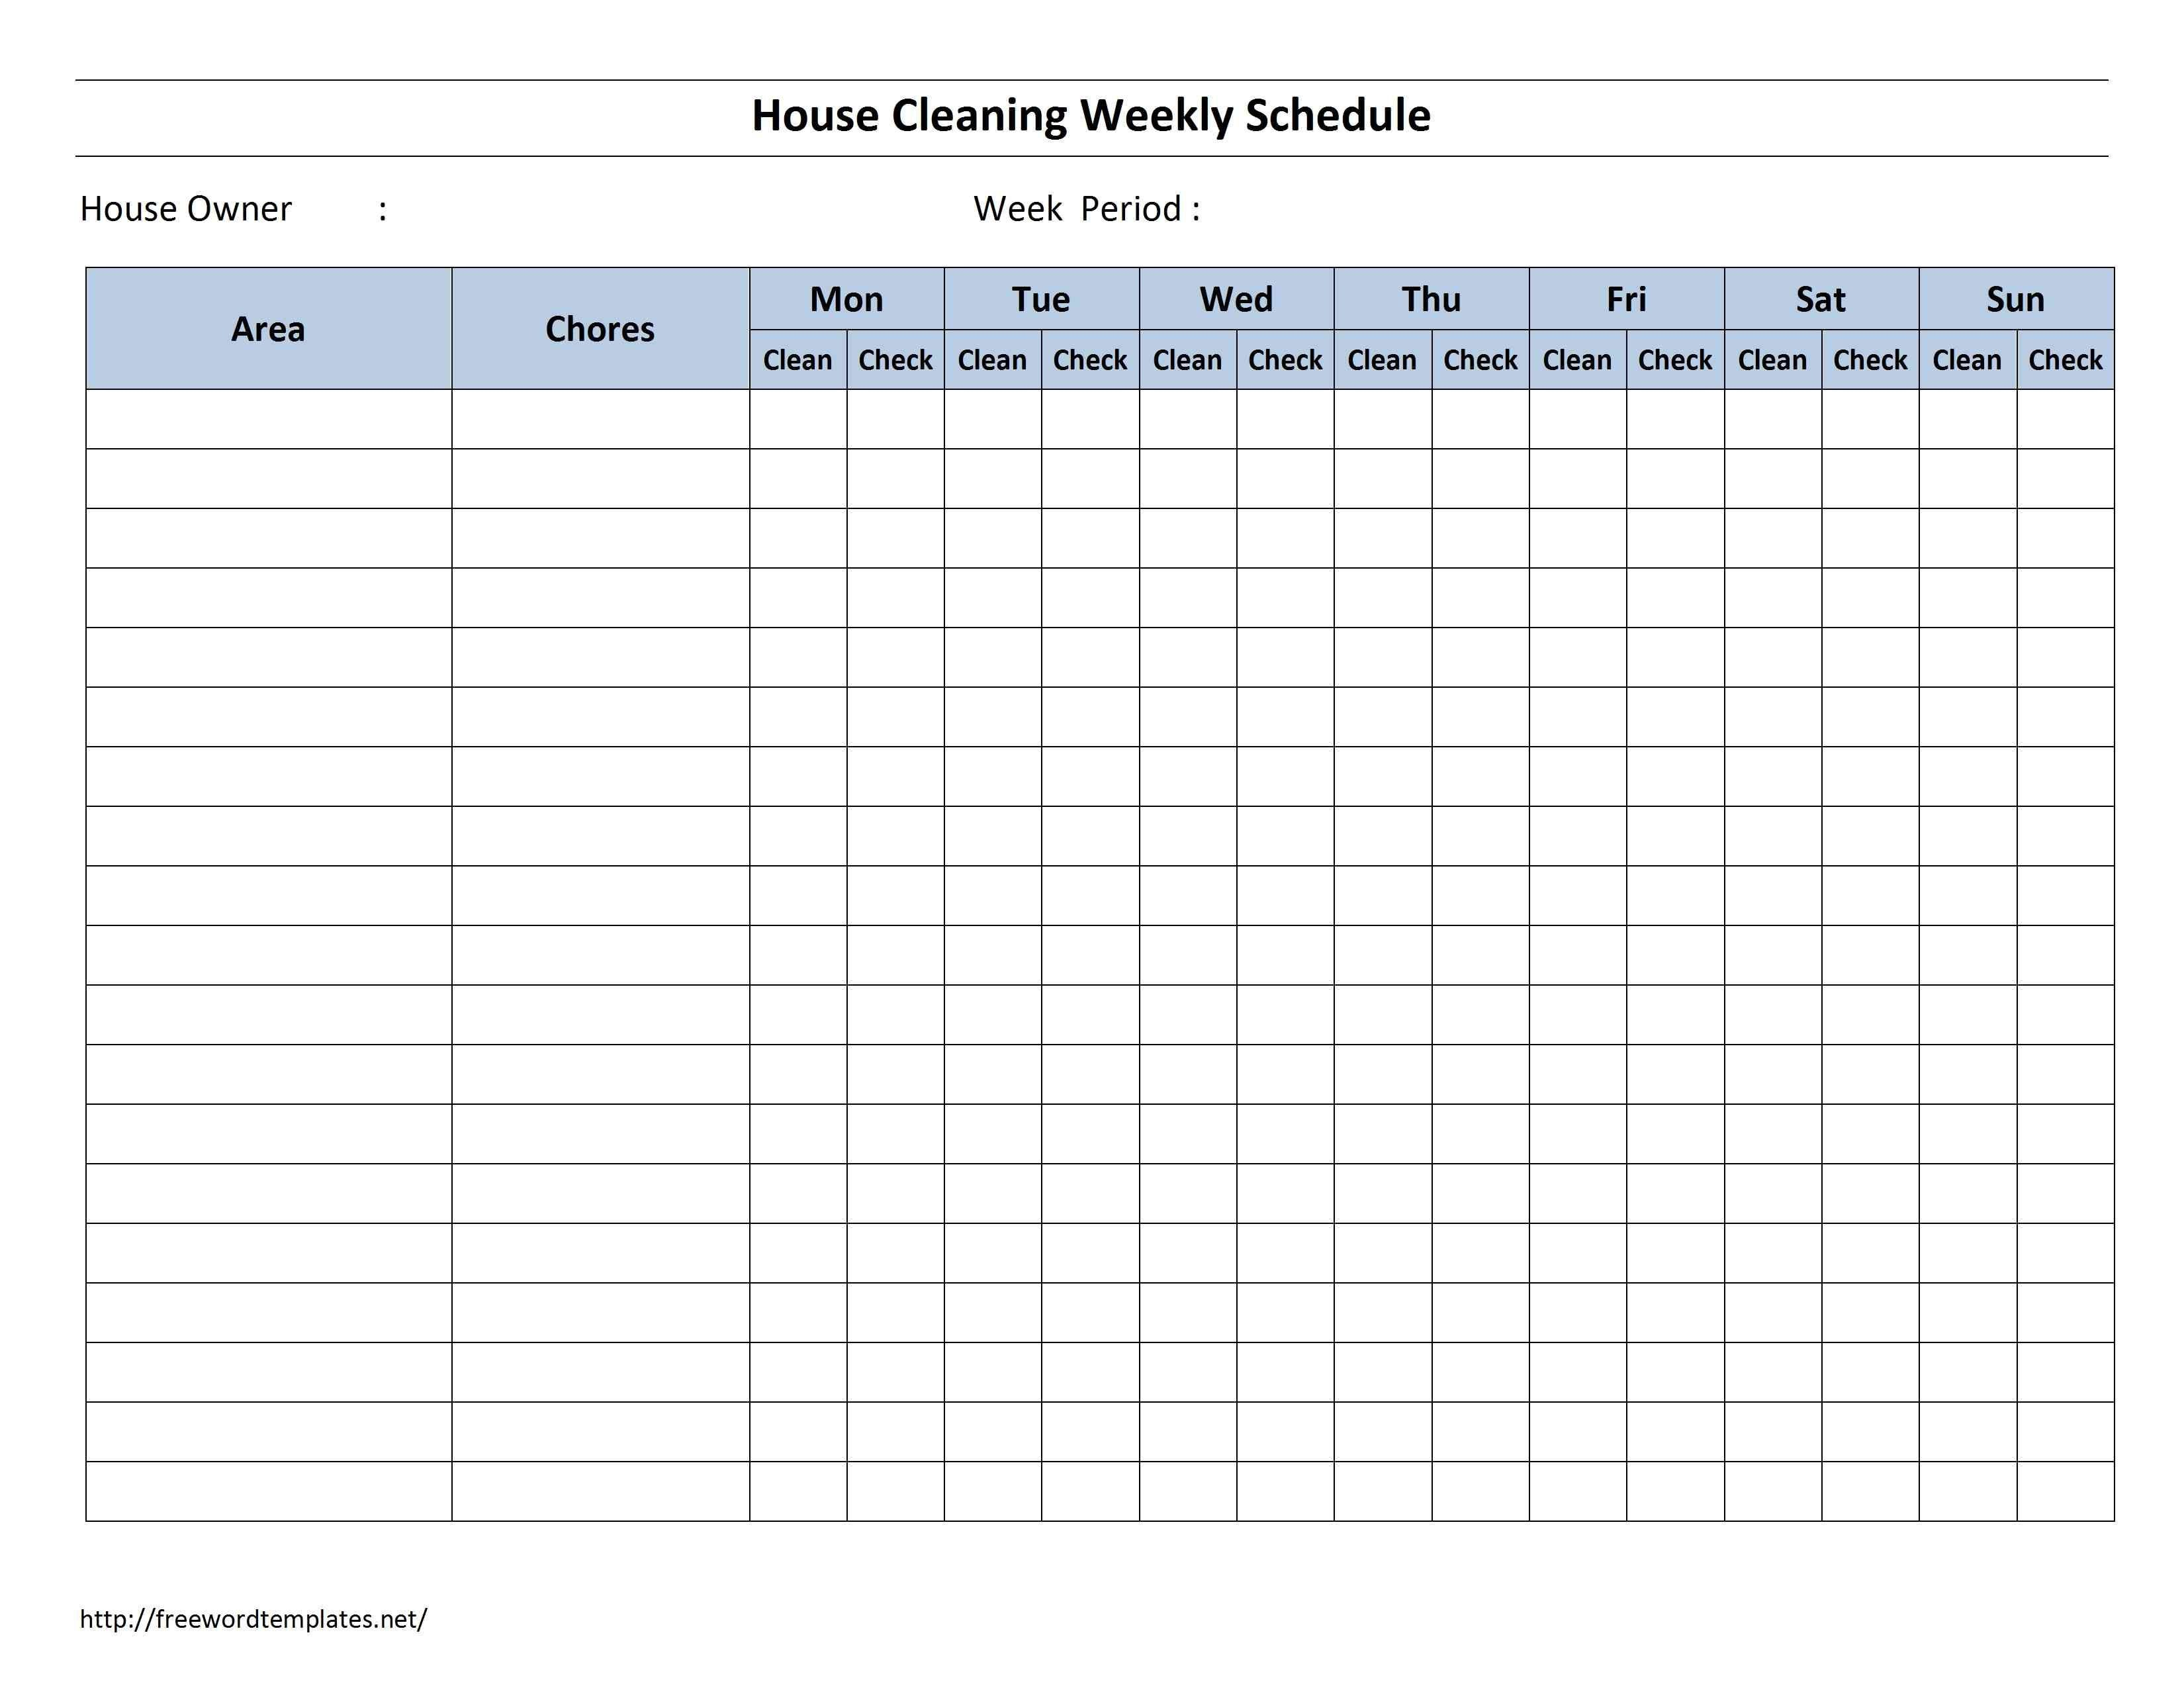 Shower Schedule Nursing Home House Cleaning organizing Pinterest